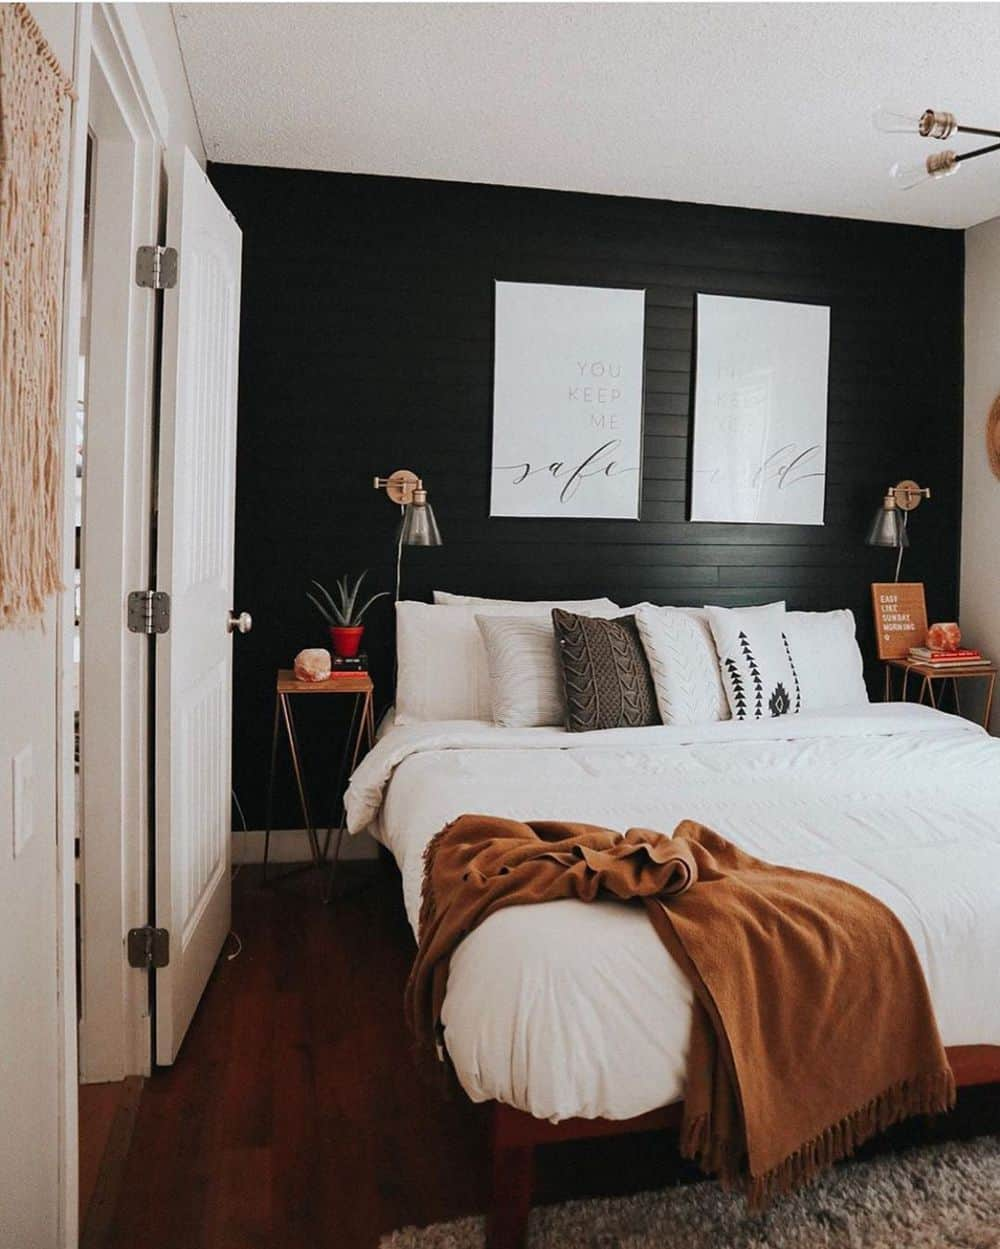 Remodeling Your Master Bedroom With Great Ideas - Dark Walls to Balance White